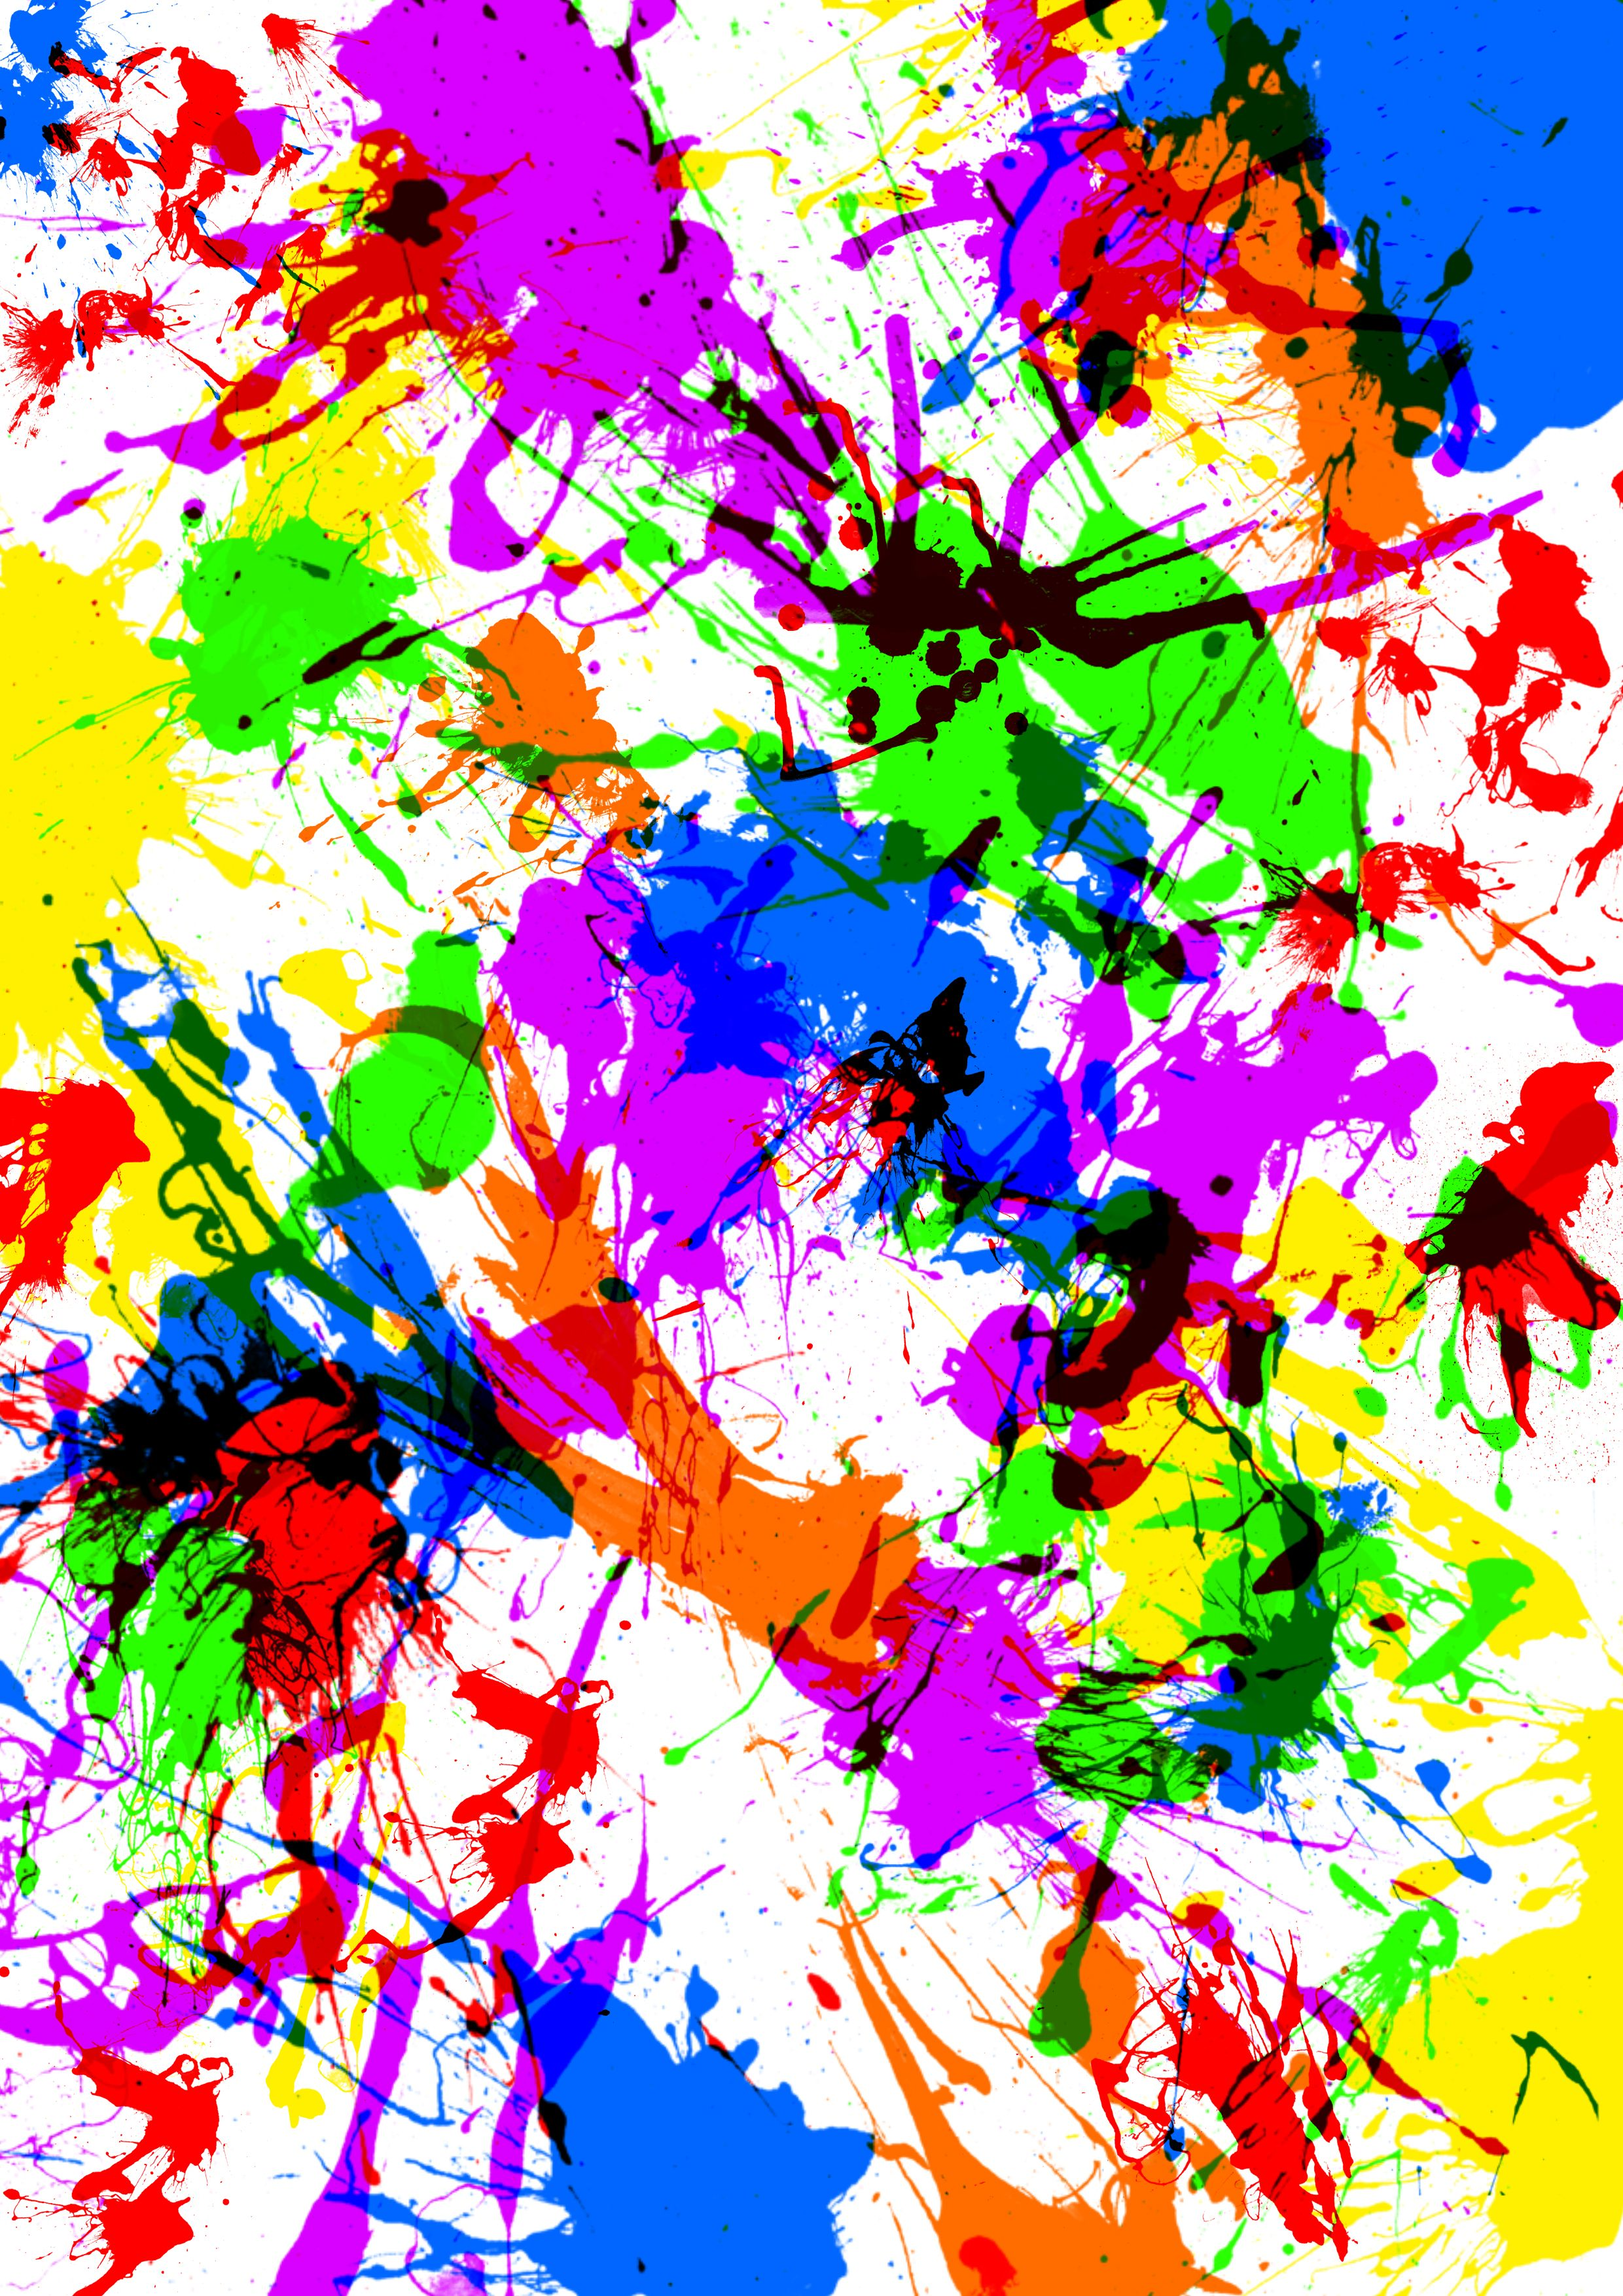 Splash Background Indicates Paint Colors And Splattered